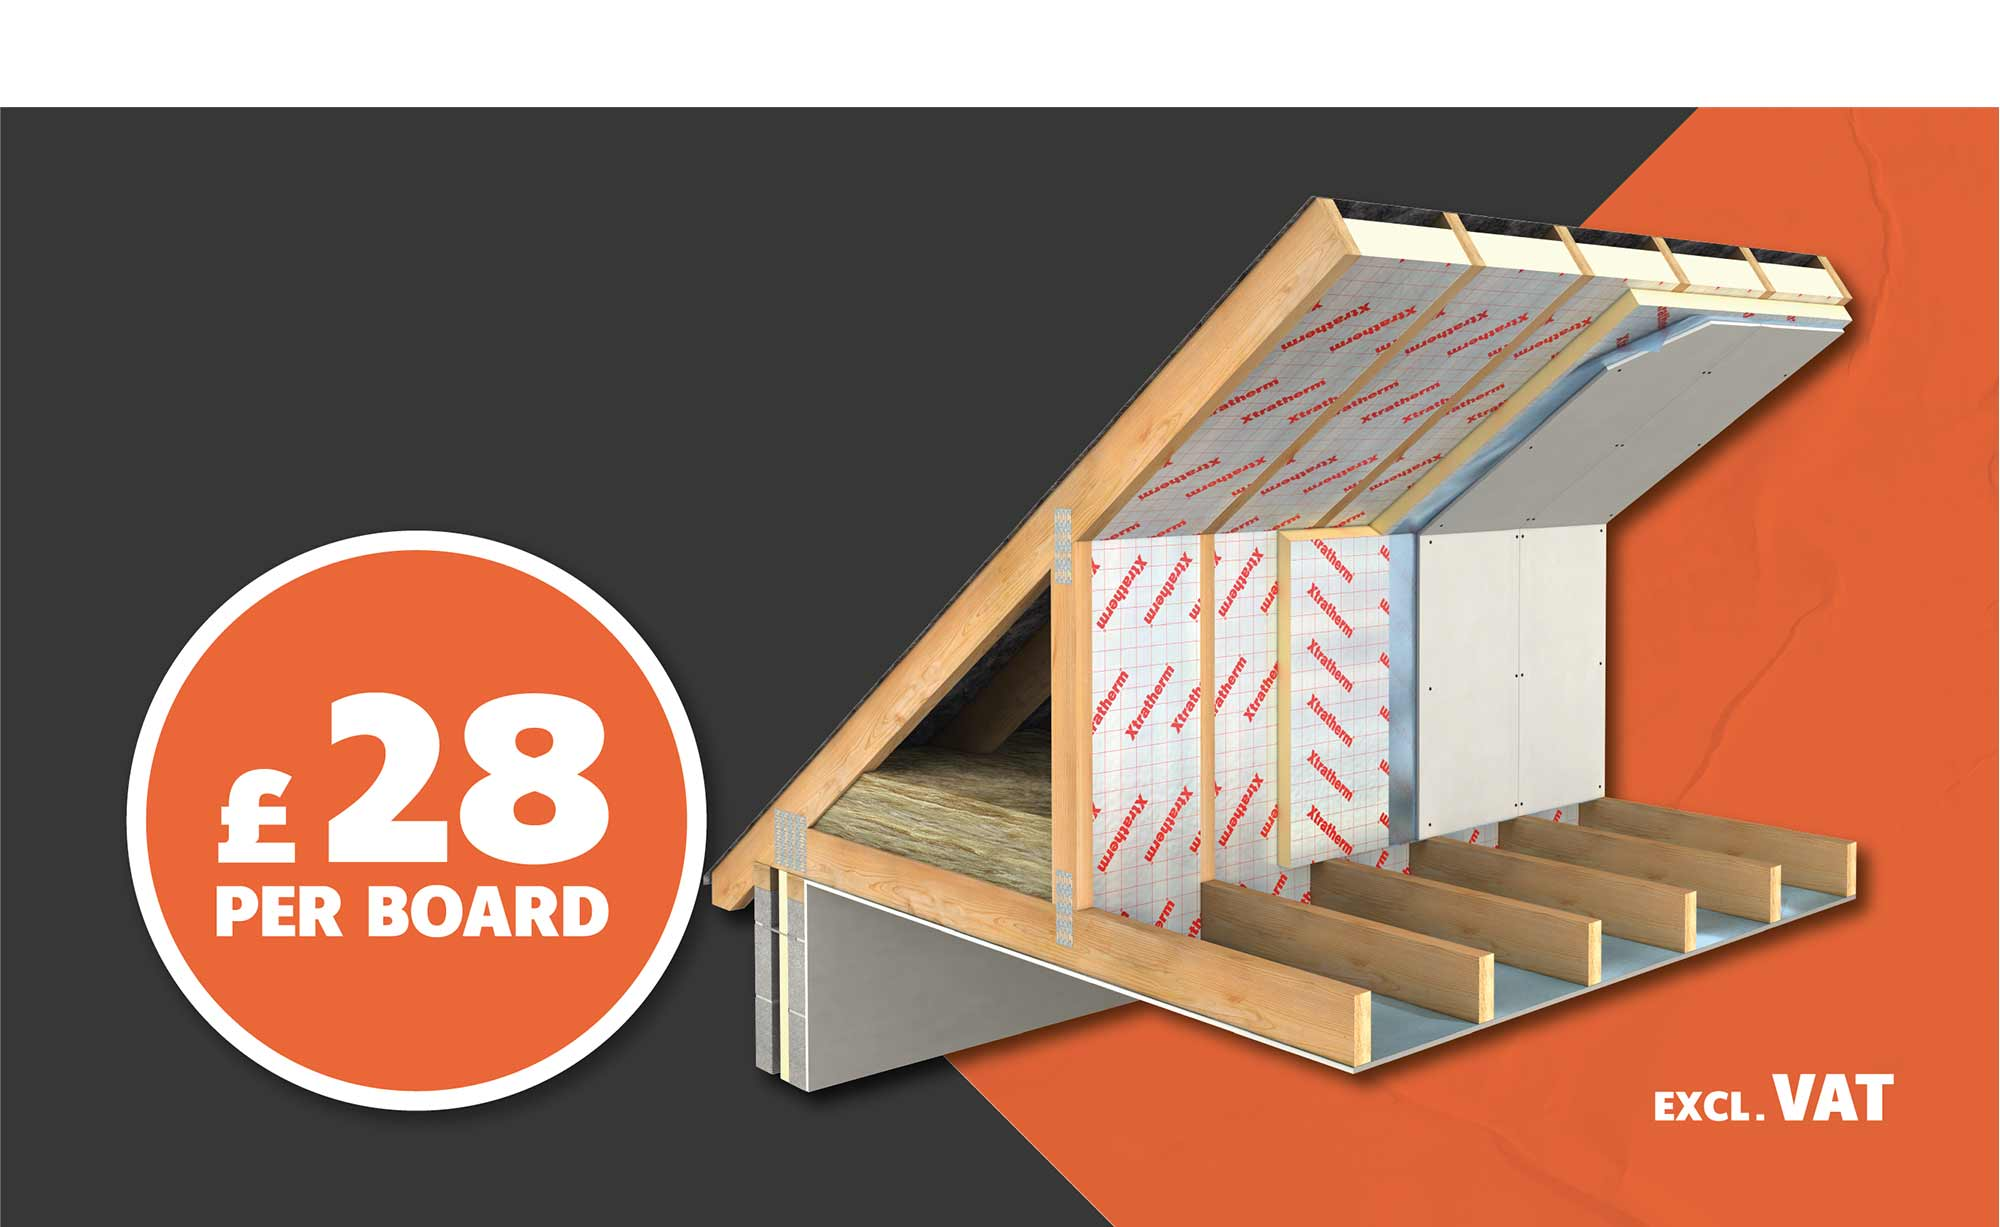 XTRATHERM PITCHED INSULATION ONLY £28